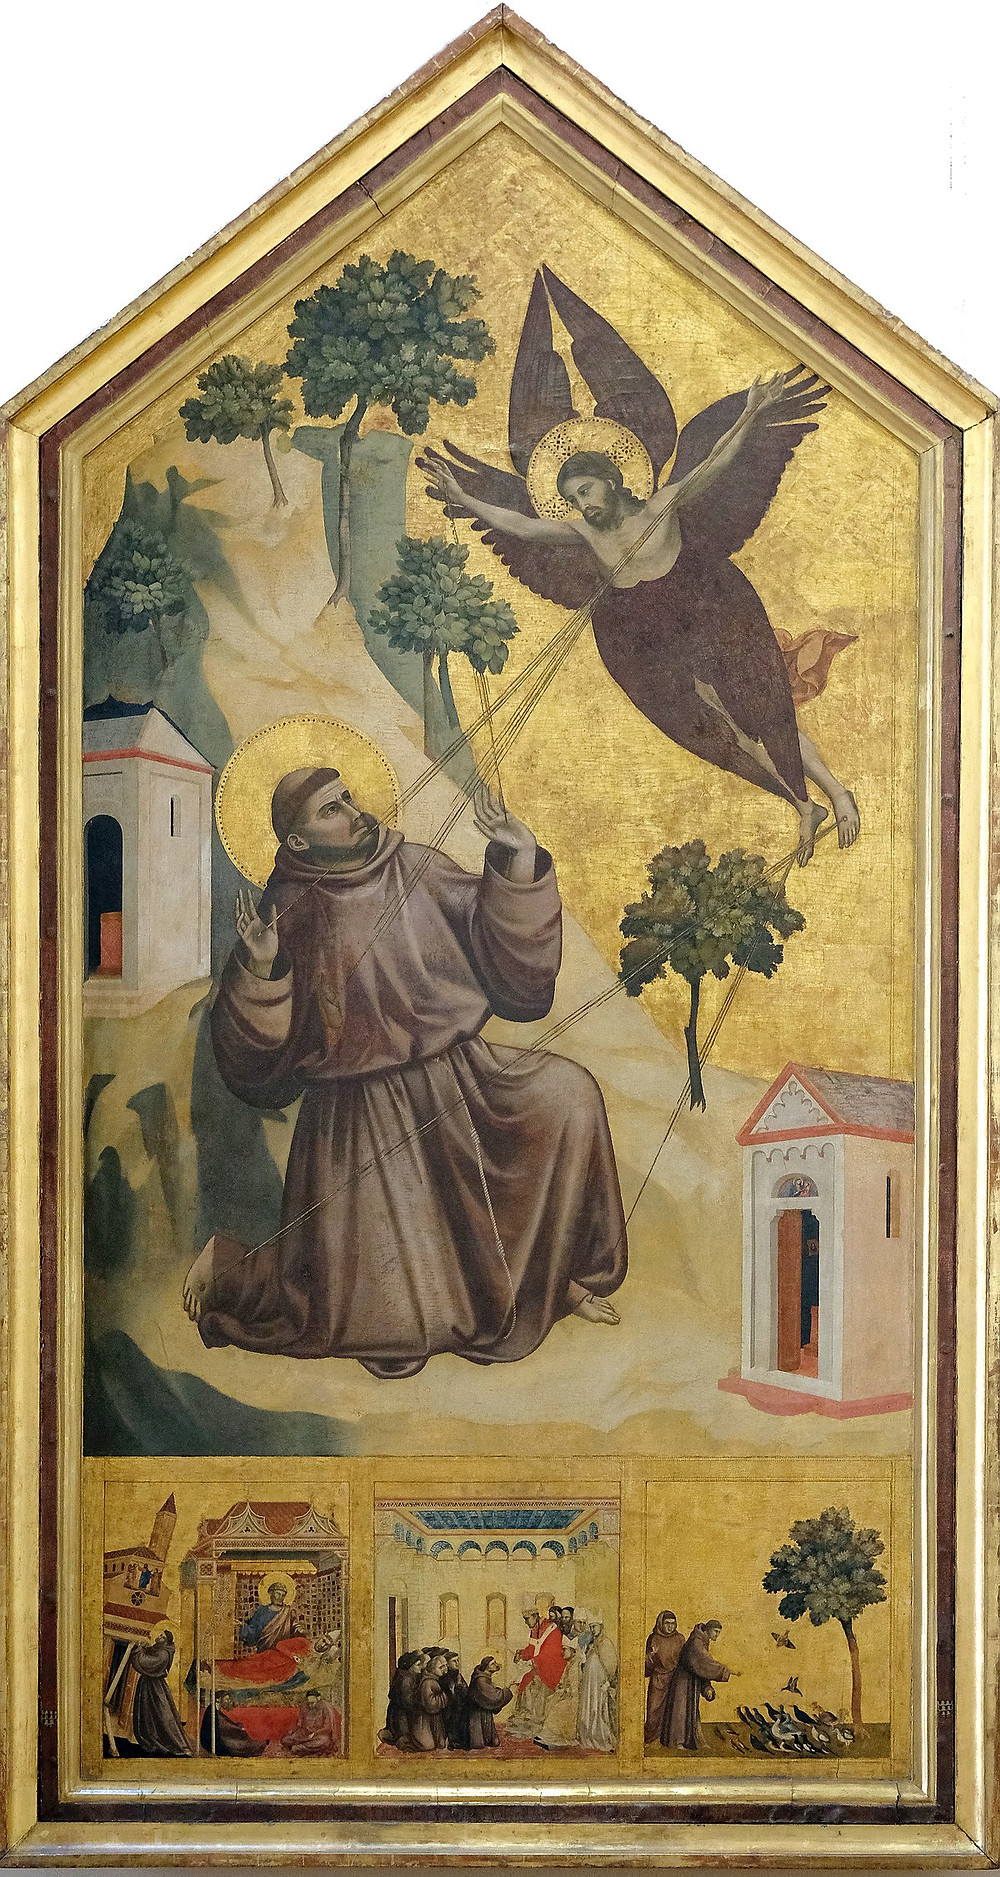 Giotto, Saint Francis Receiving the Stigmata, 1295-1300 -- in the Louvre